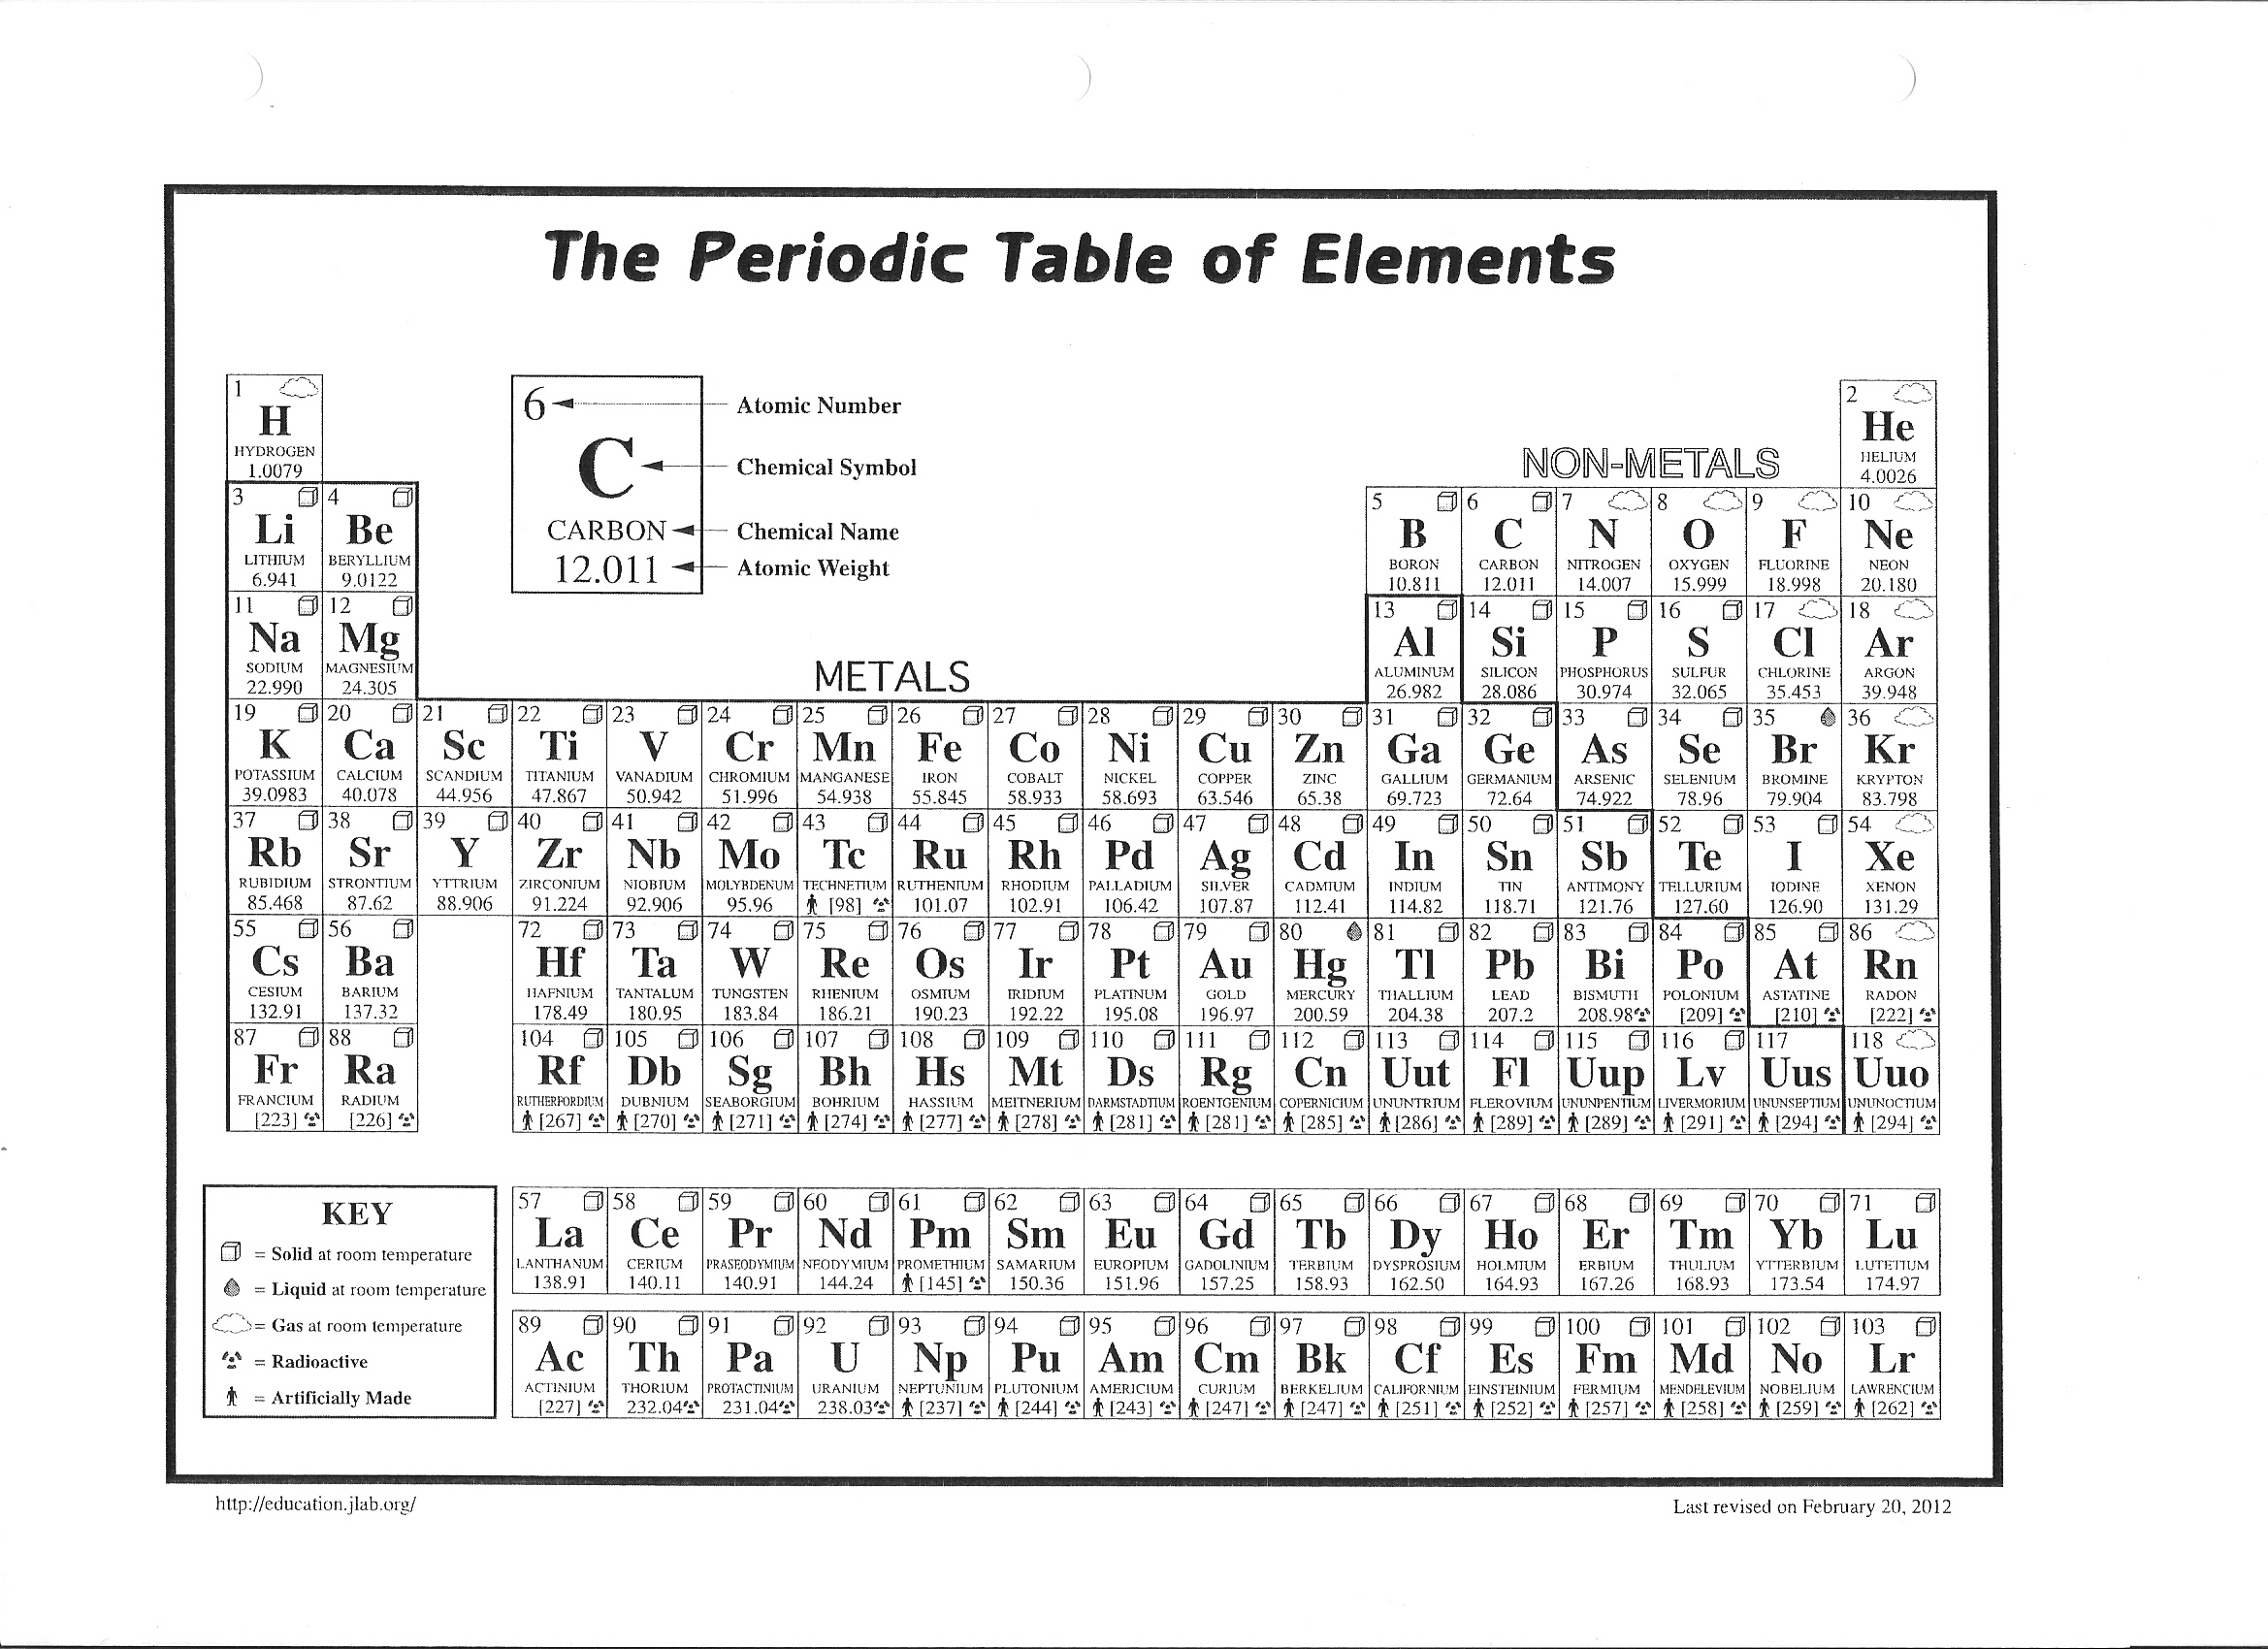 Periodic Tables Of The Elements In American English Michael Canov